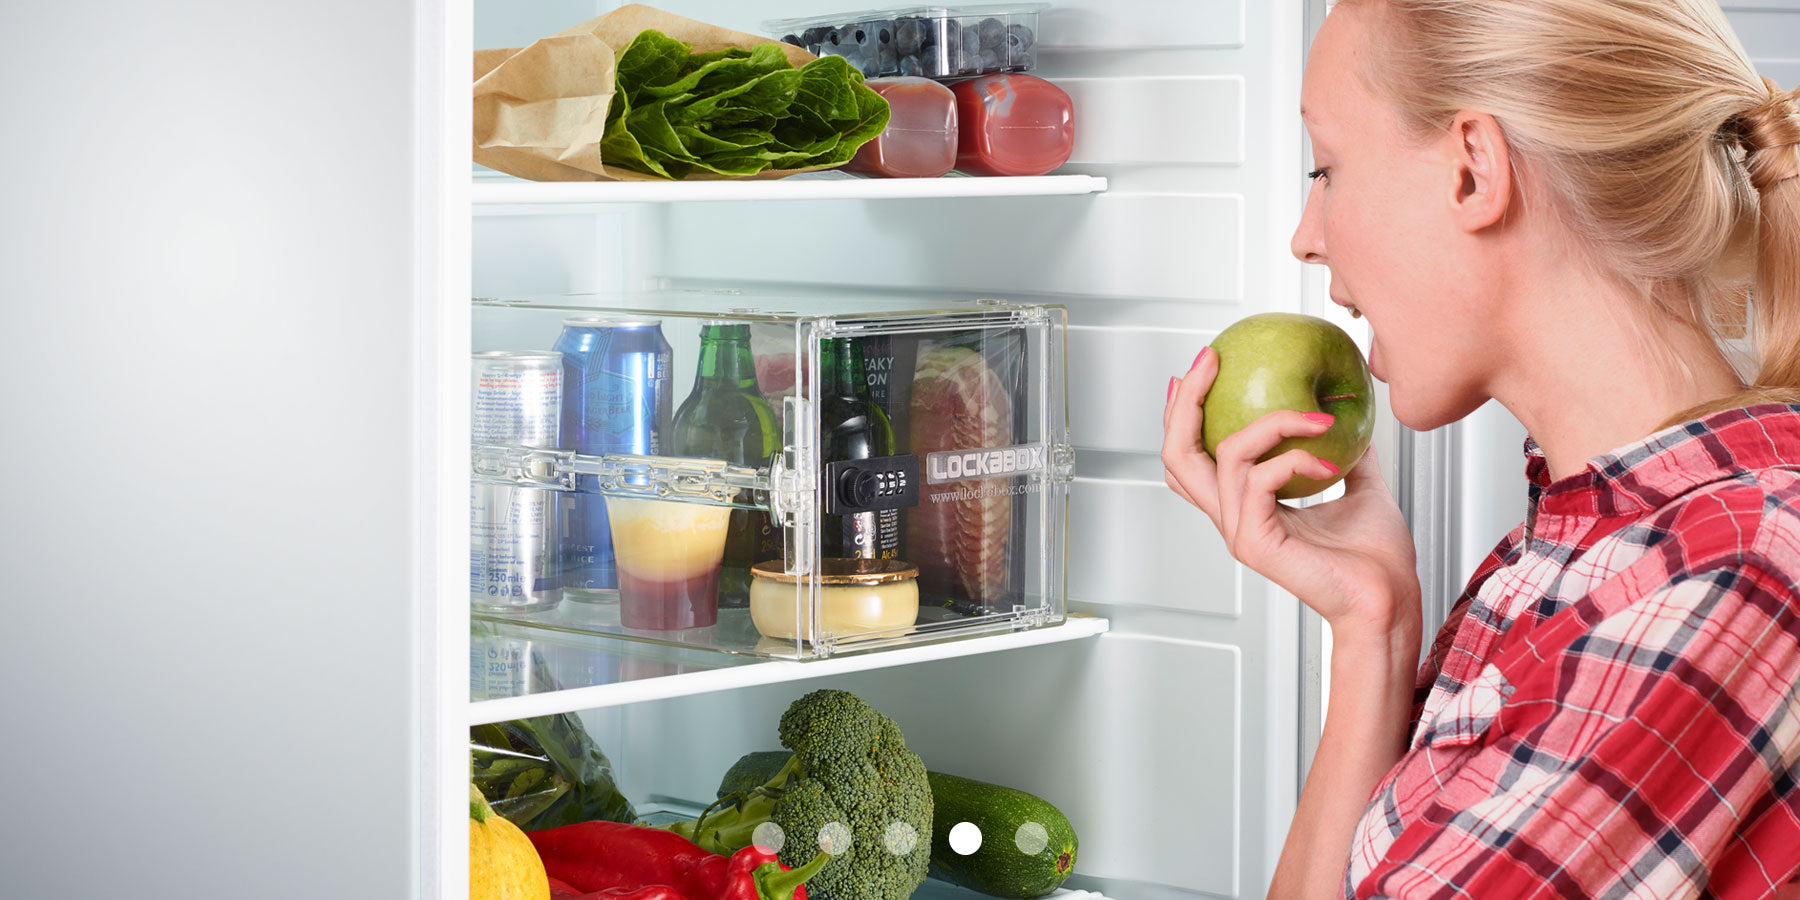 lockable one in a fridge securing food in student accommodation